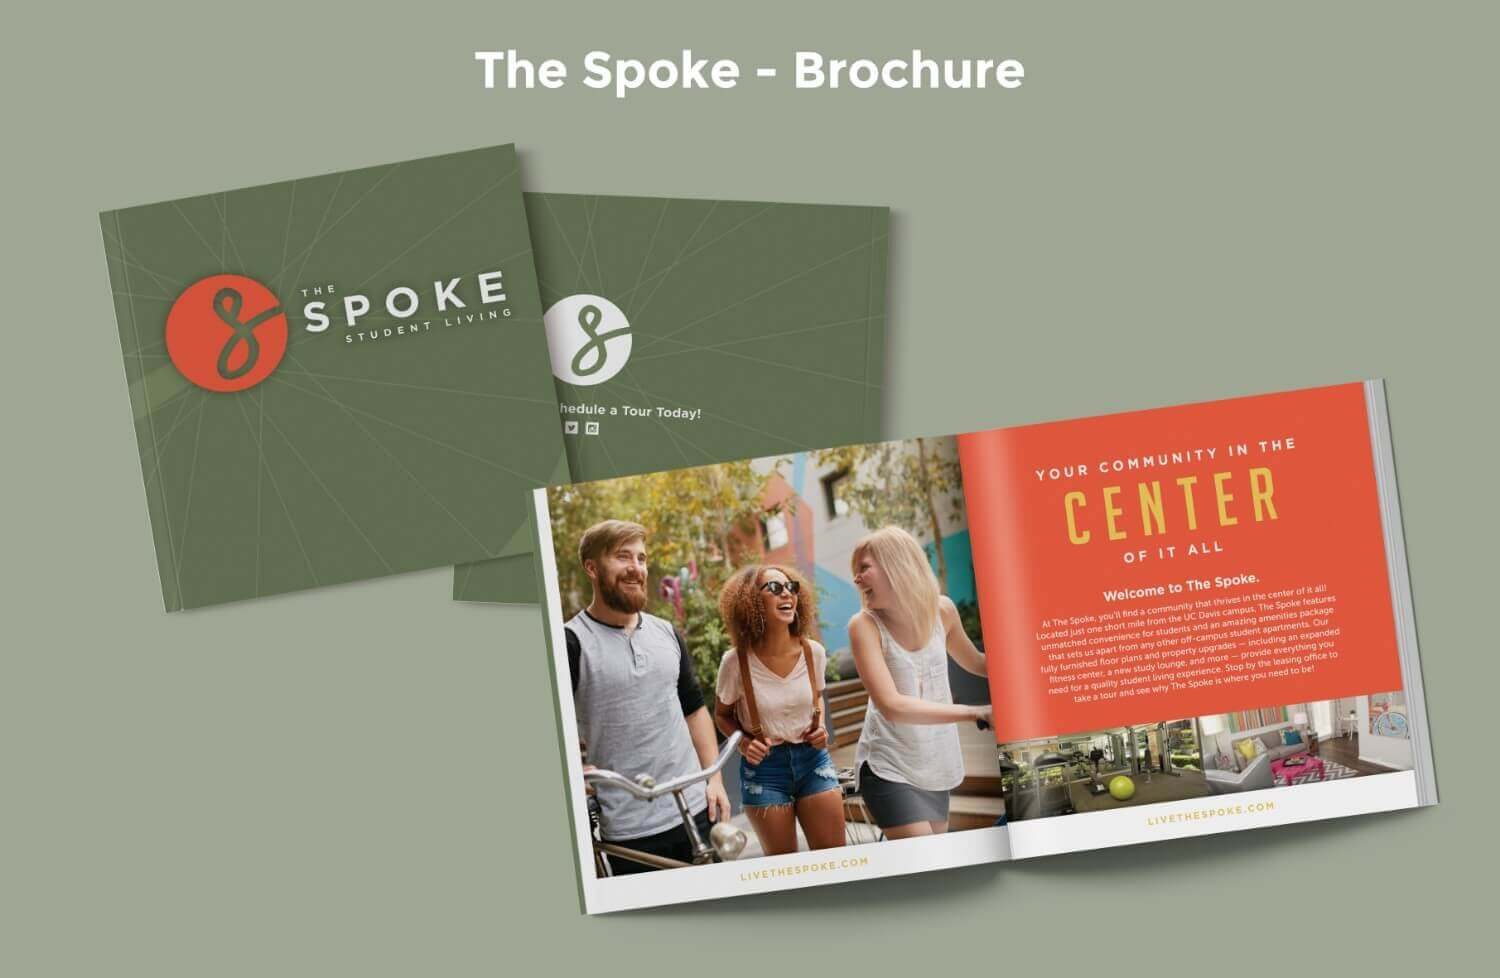 TheSpoke-Brochure